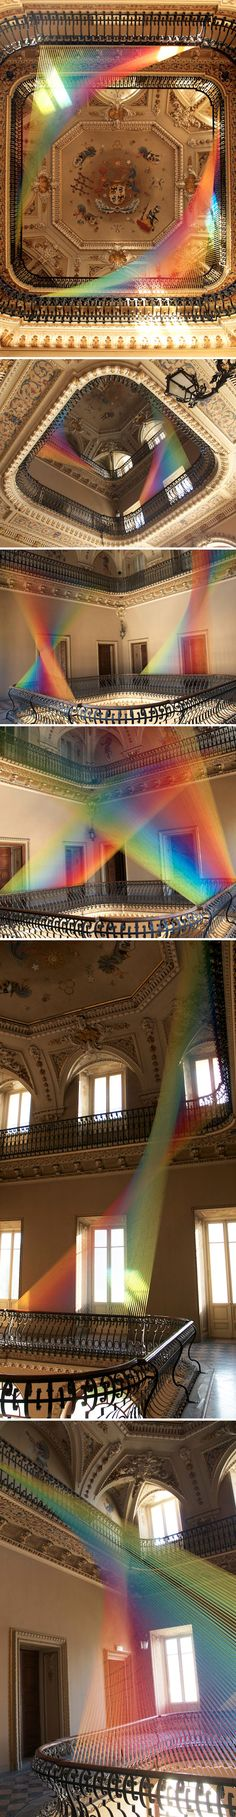 Take a moment to look at this - it's not created by light as it first appears, but by colored strings strung to look like a fabulously refracted rainbow from a giant glass prism.  By Gabriel Dawe